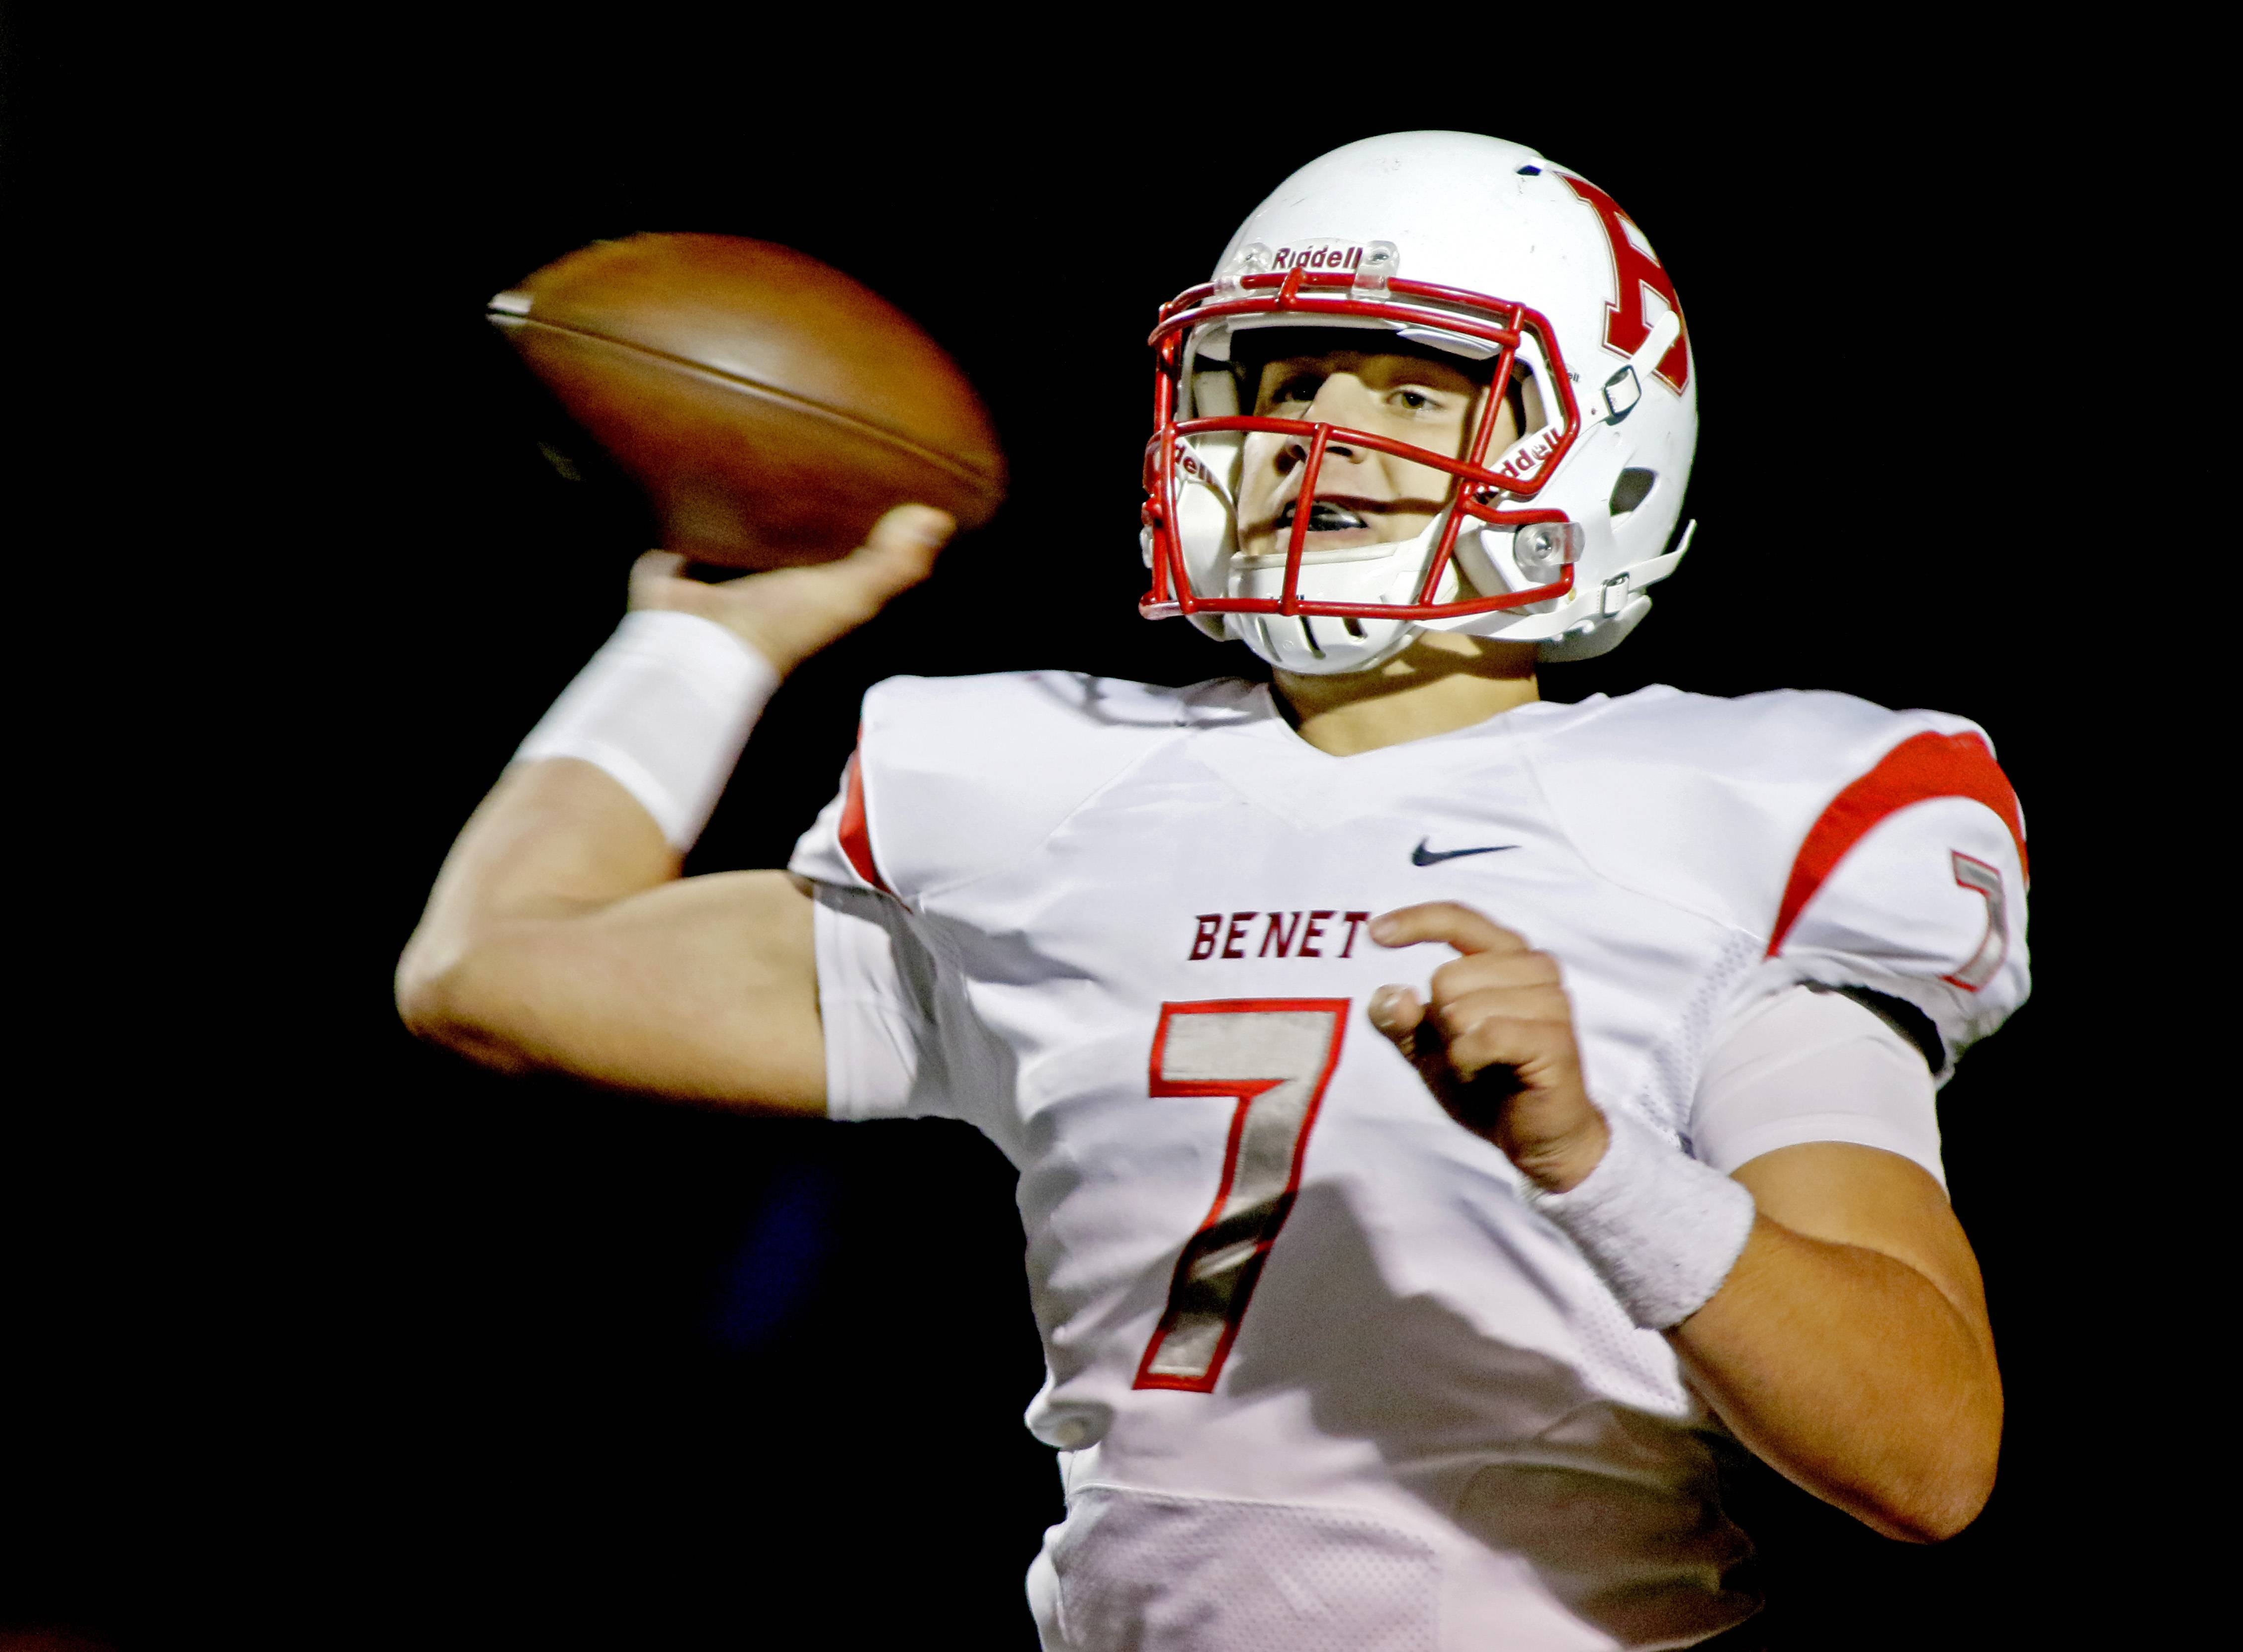 Benet Academy quarterback Jack Sznajder throws a pass over the middle against Rolling Meadows during Class 7A football action in Rolling Meadows.